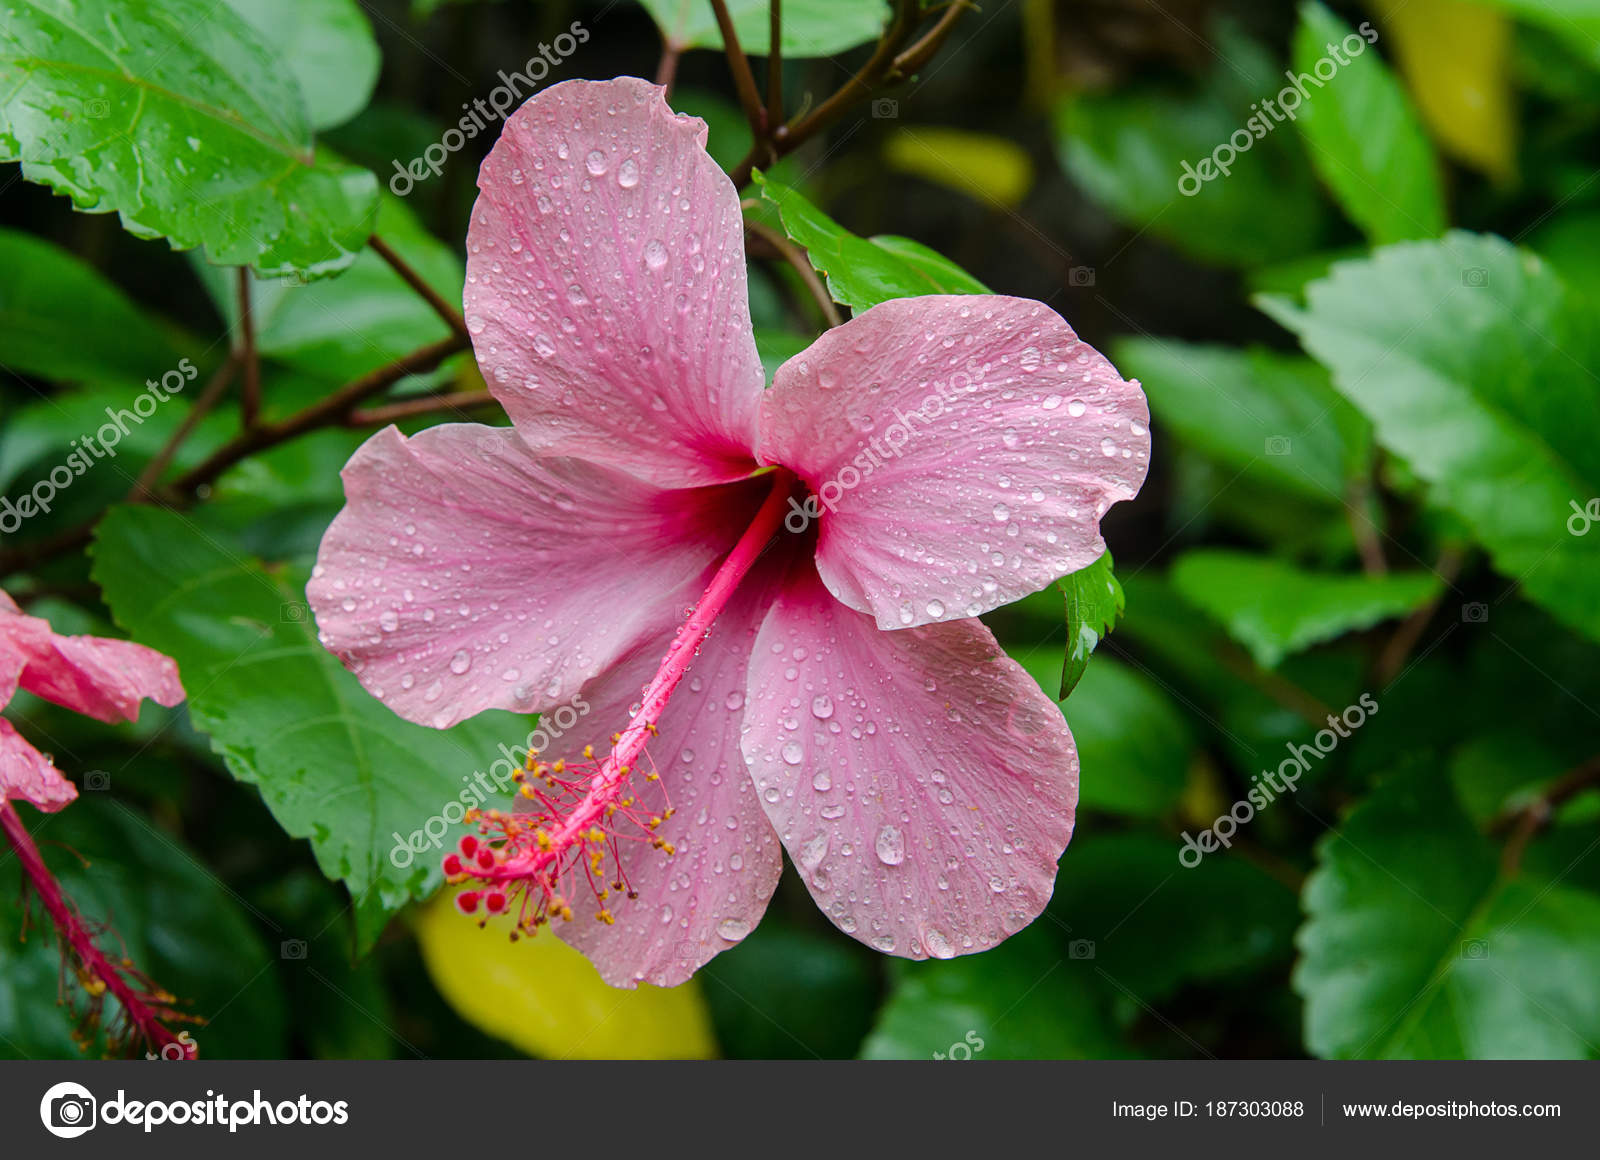 Hibiscus Flower In The Garden With Water Drops Detail Of The